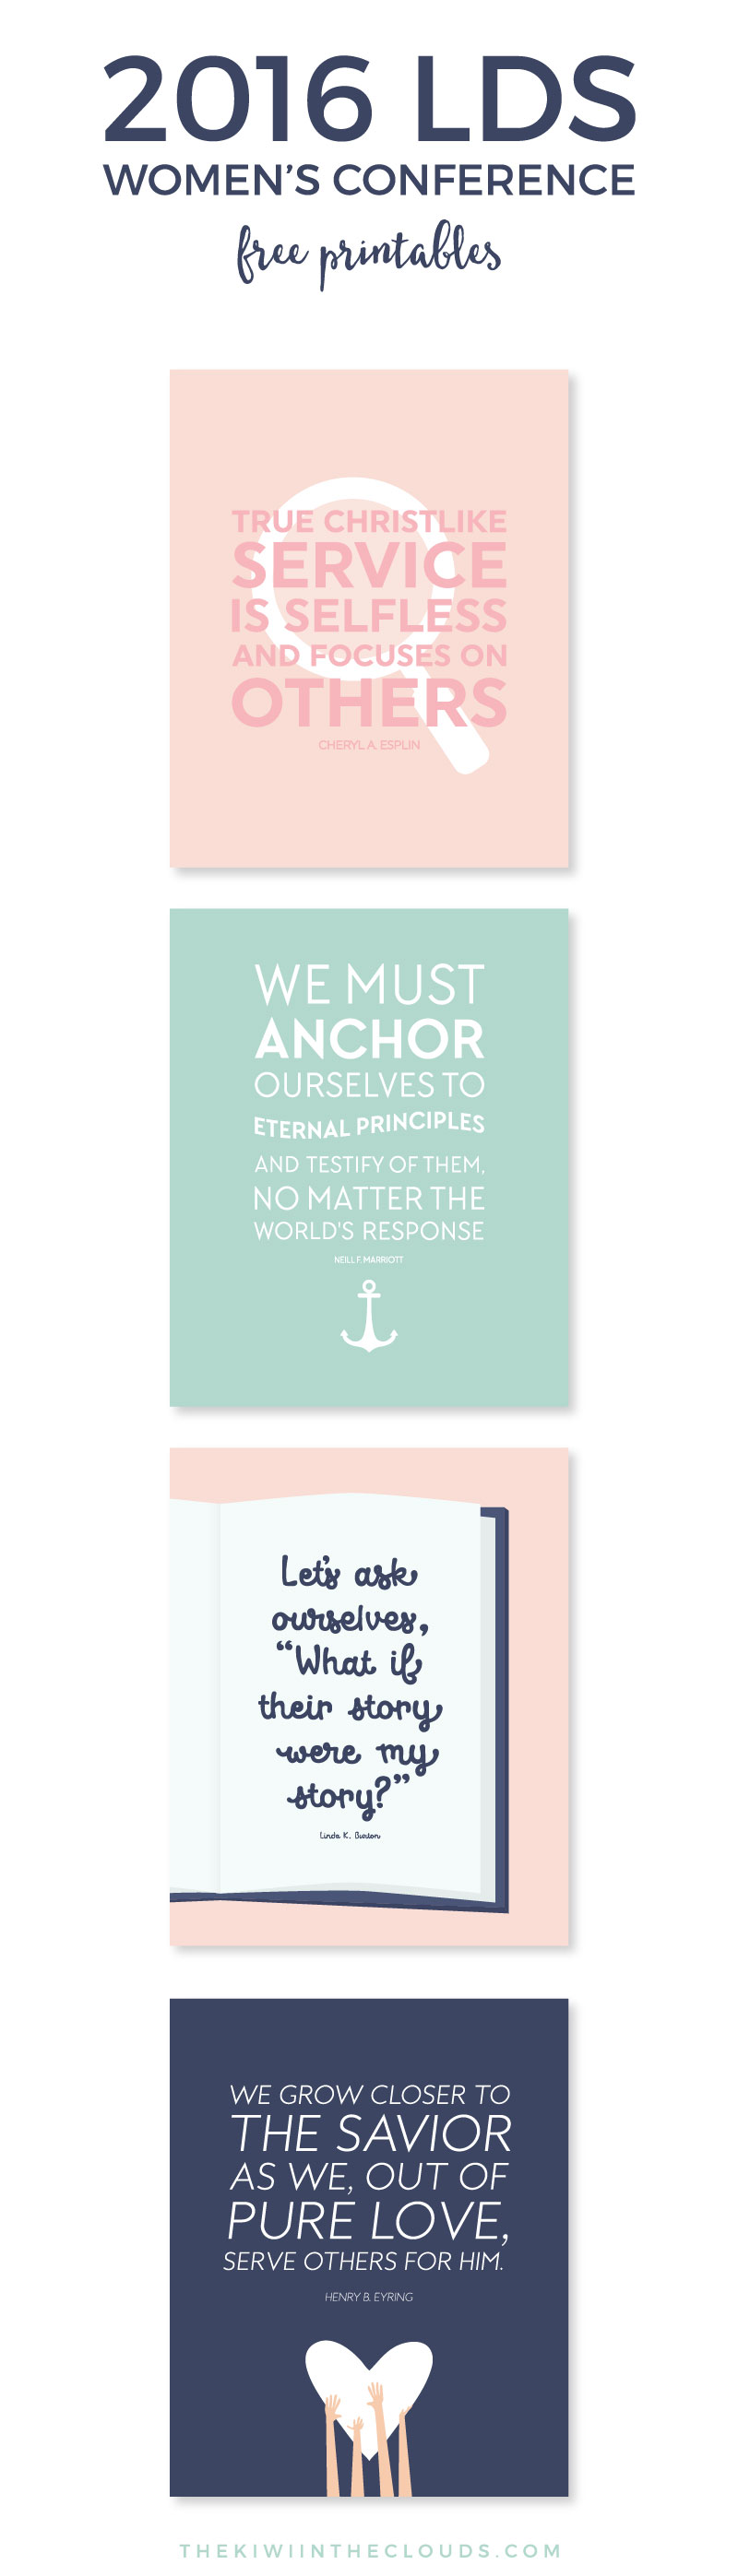 These LDS Womens Conference 2016 FREE printables are the perfect way to add inspiring and uplifting art to your home in an instant! They also make great visiting teaching handouts as well. Come by and download these today!